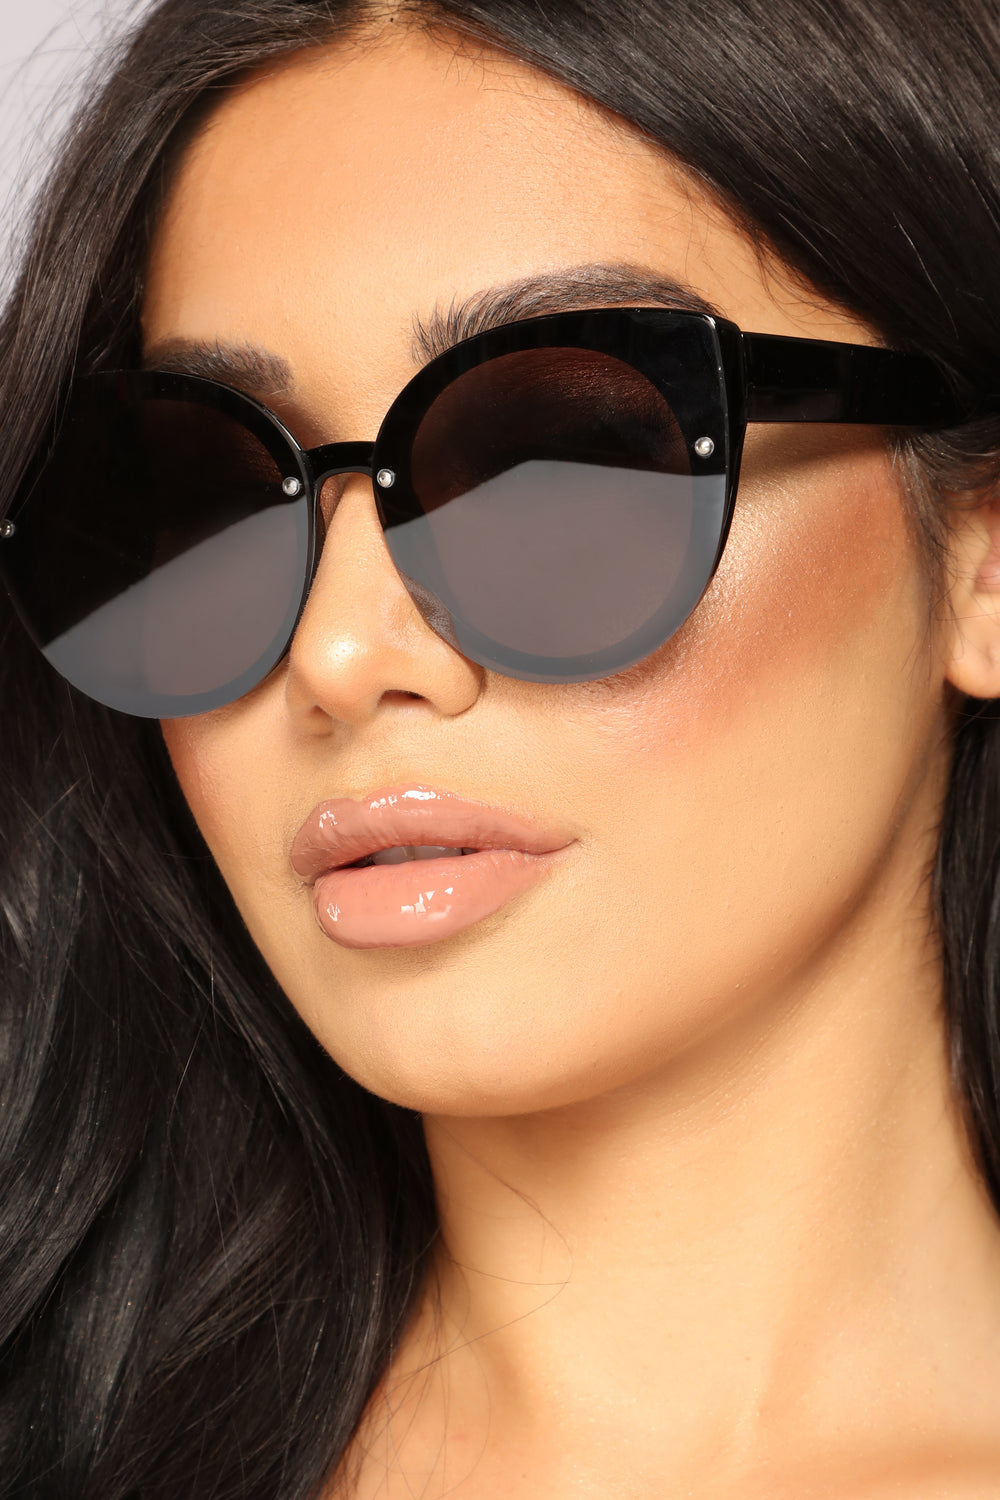 French Kiss Sunglasses - Black